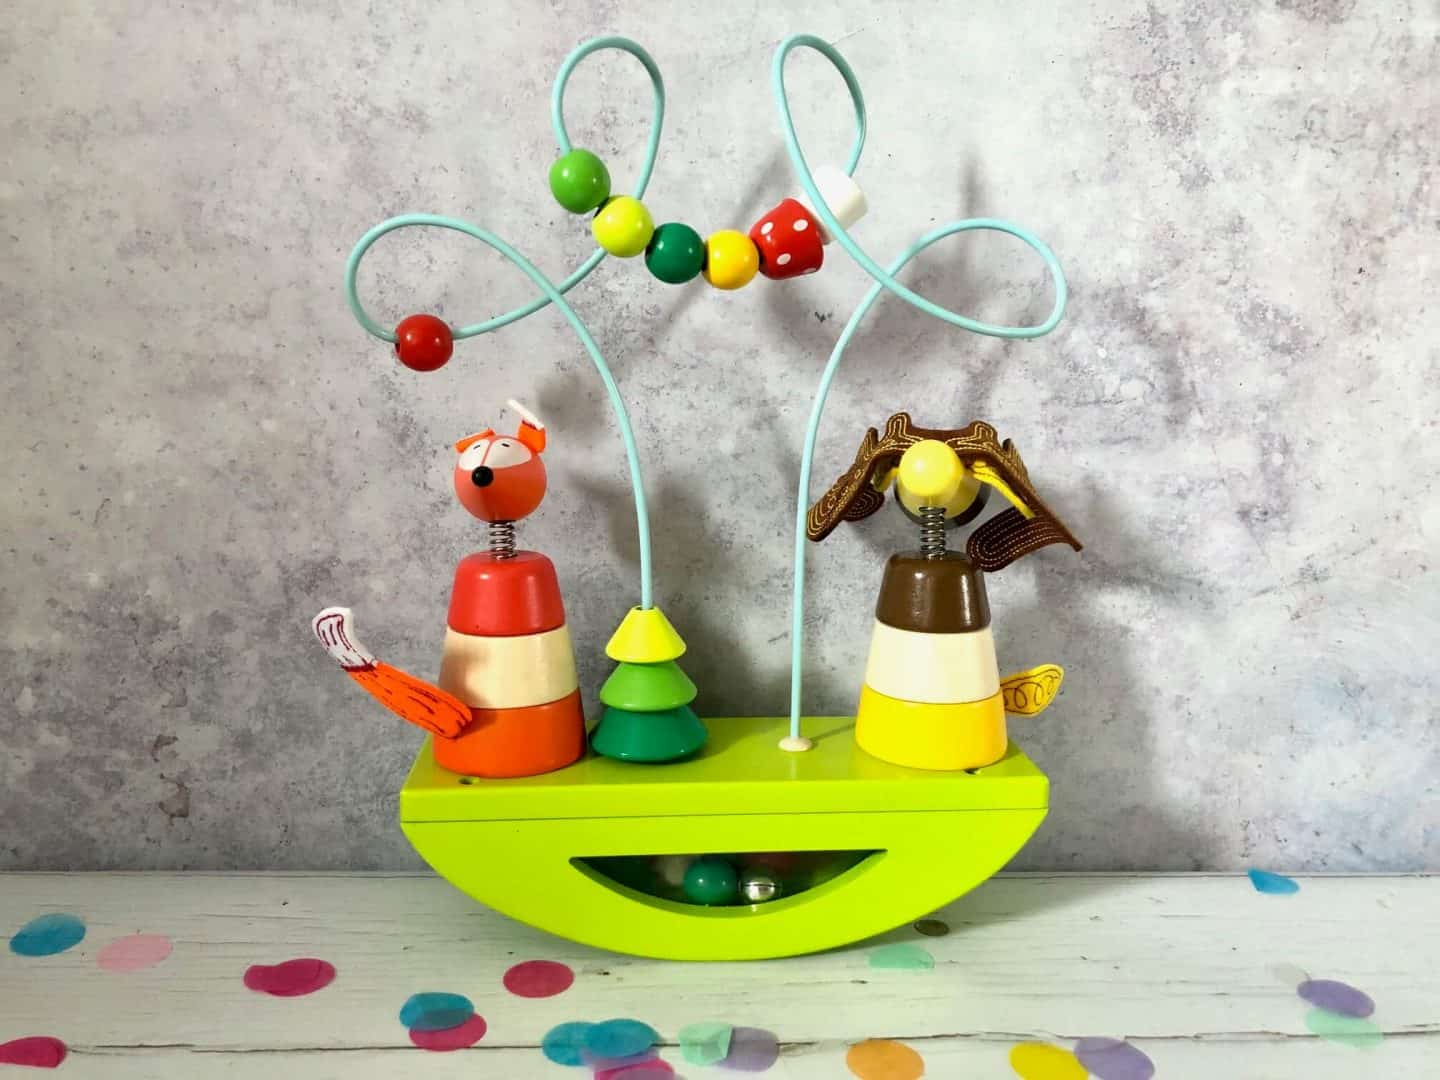 Looping Stacker and Rocker Toy